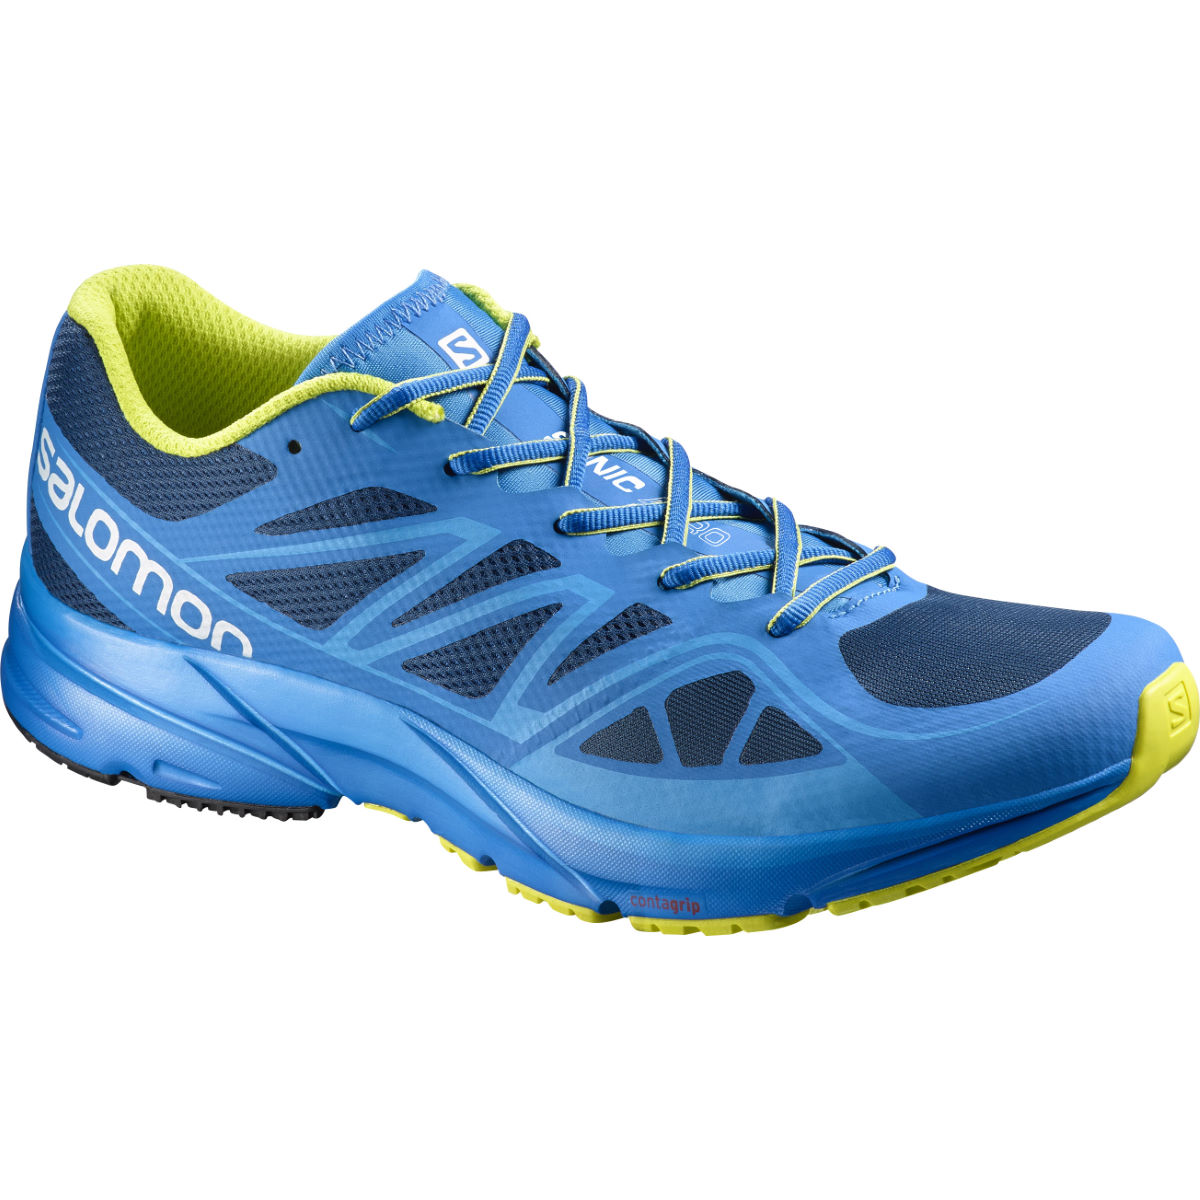 Chaussures Salomon Sonic Aero (AH16) - 10 UK Blue/Green Chaussures de running amorties